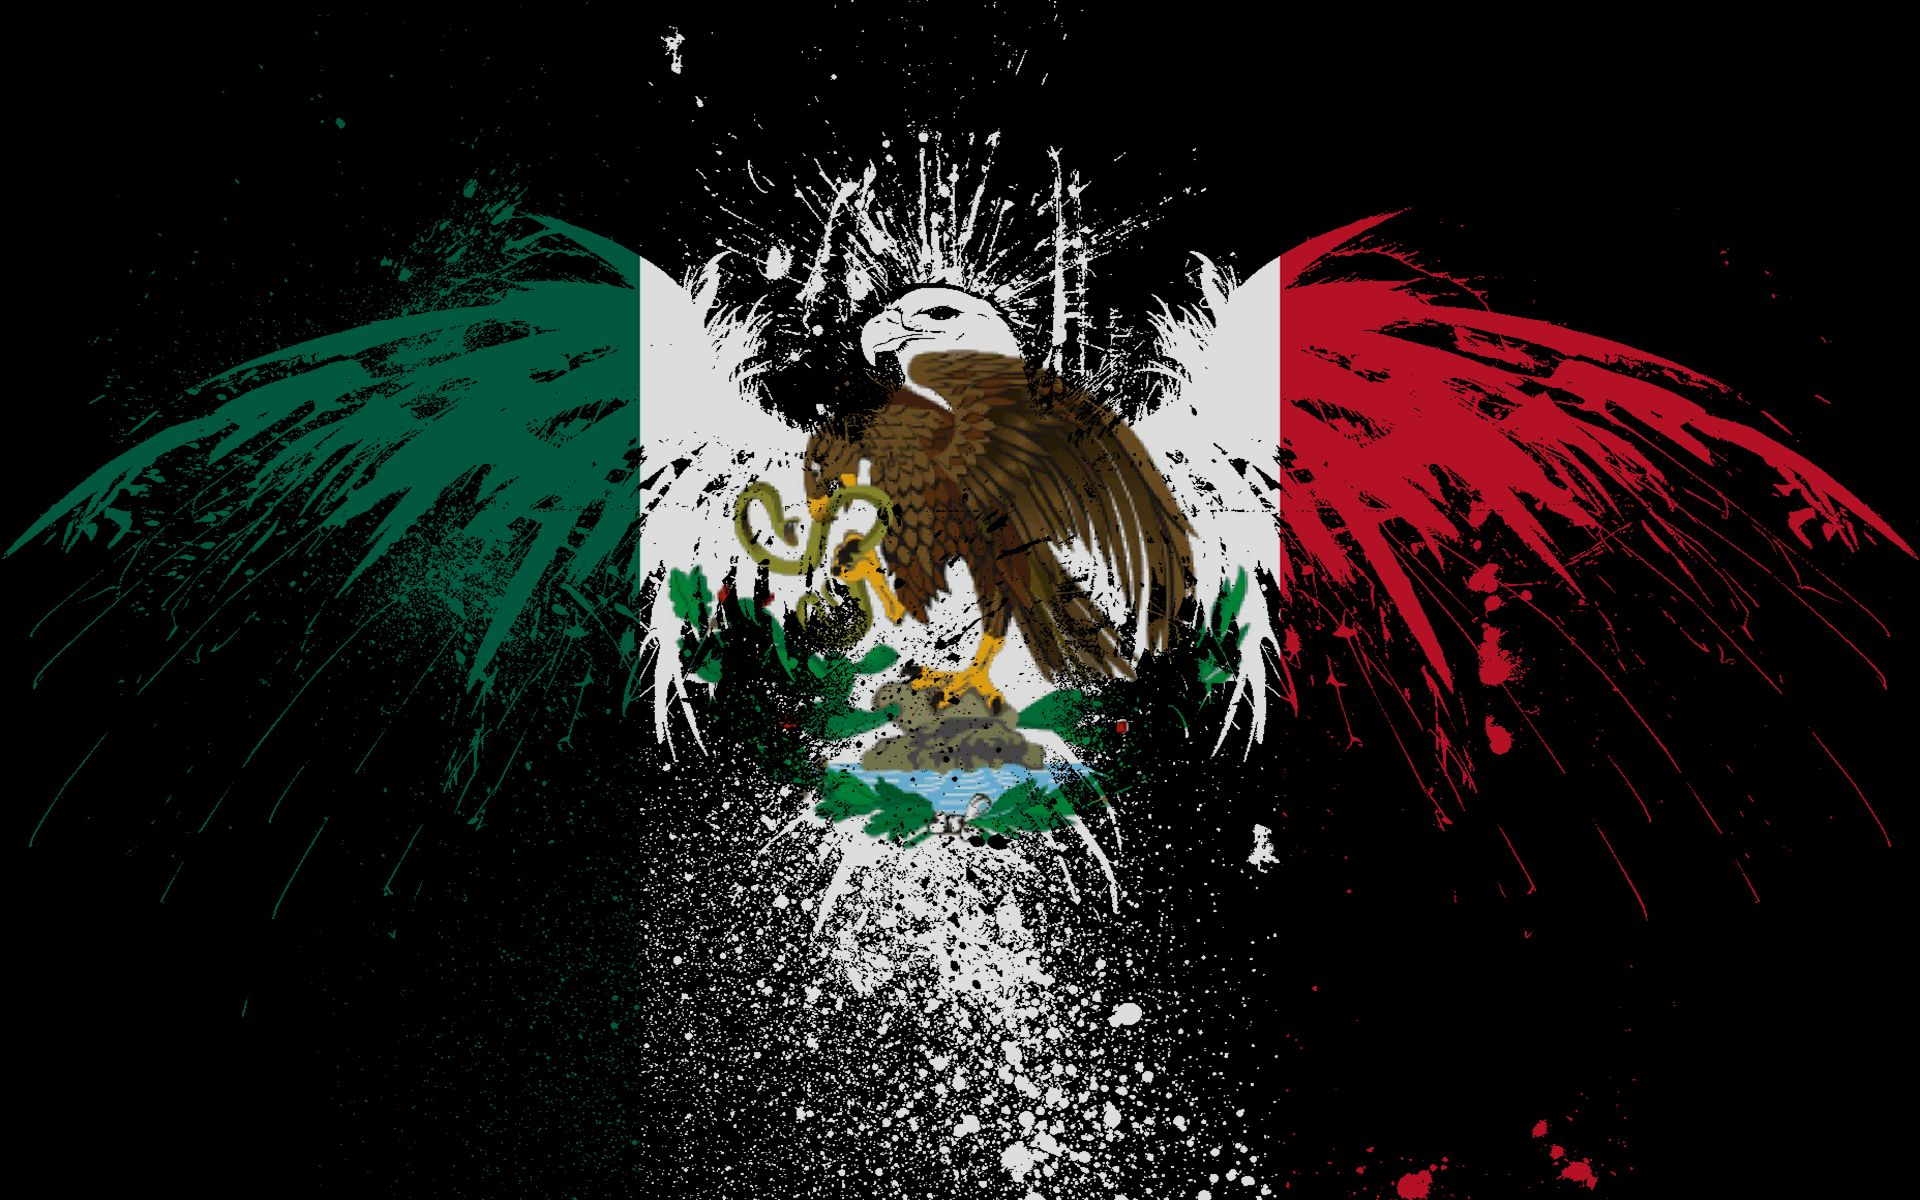 The Mexican Flag Flag Wallpapers Hd Wallpapers For Free Download Mexican Art Italian Flag Image Mexico Wallpaper